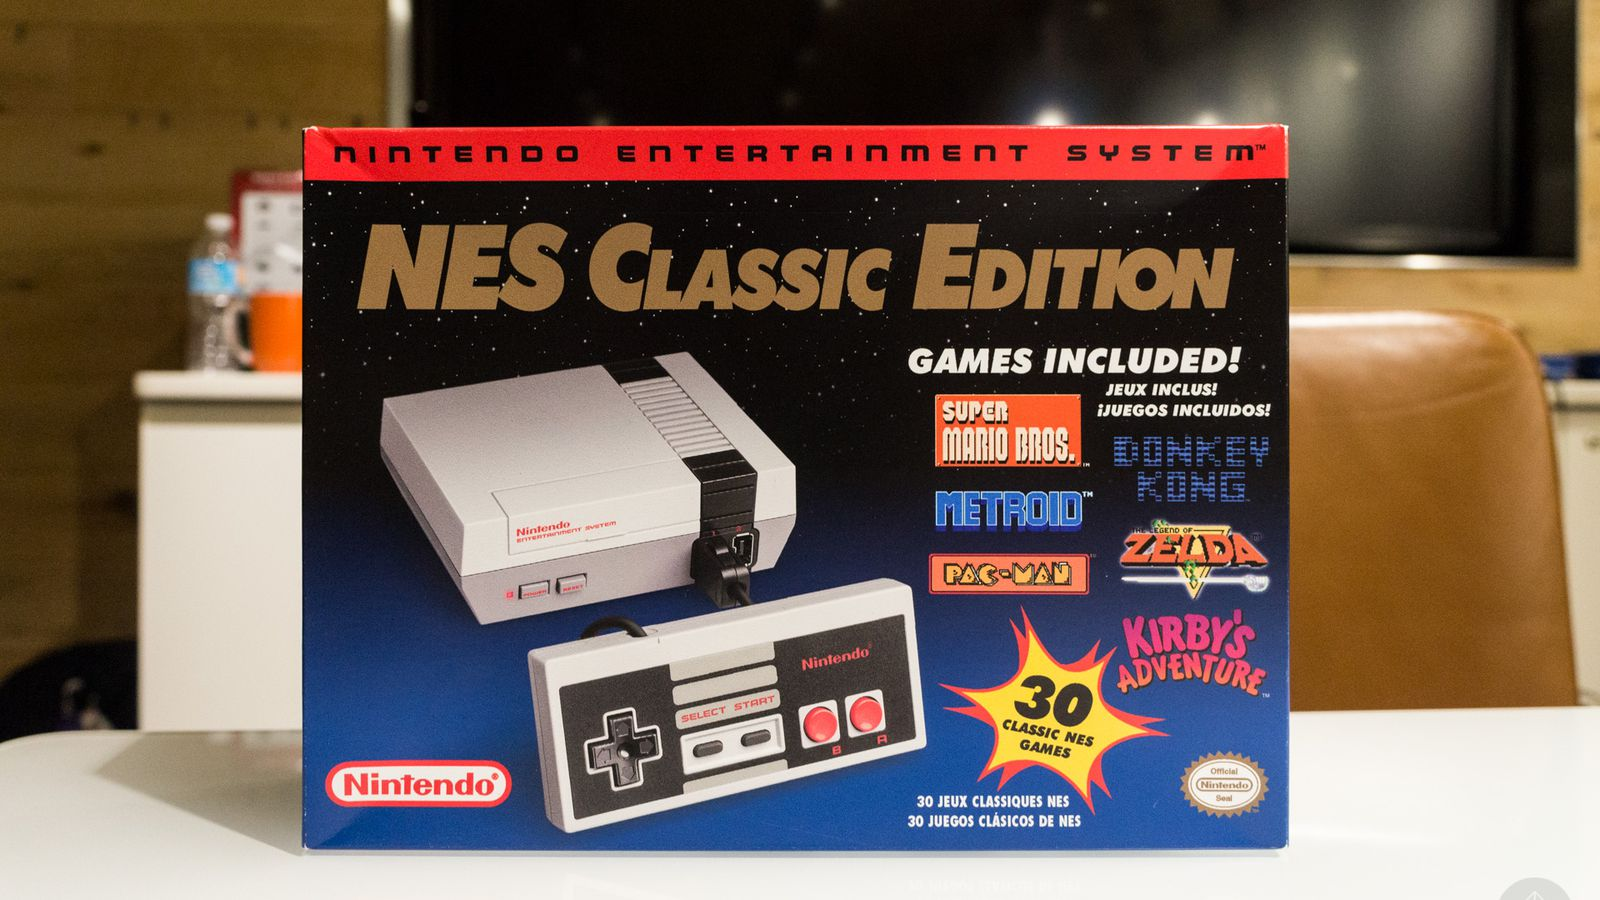 NES Classic back on sale at Best Buy